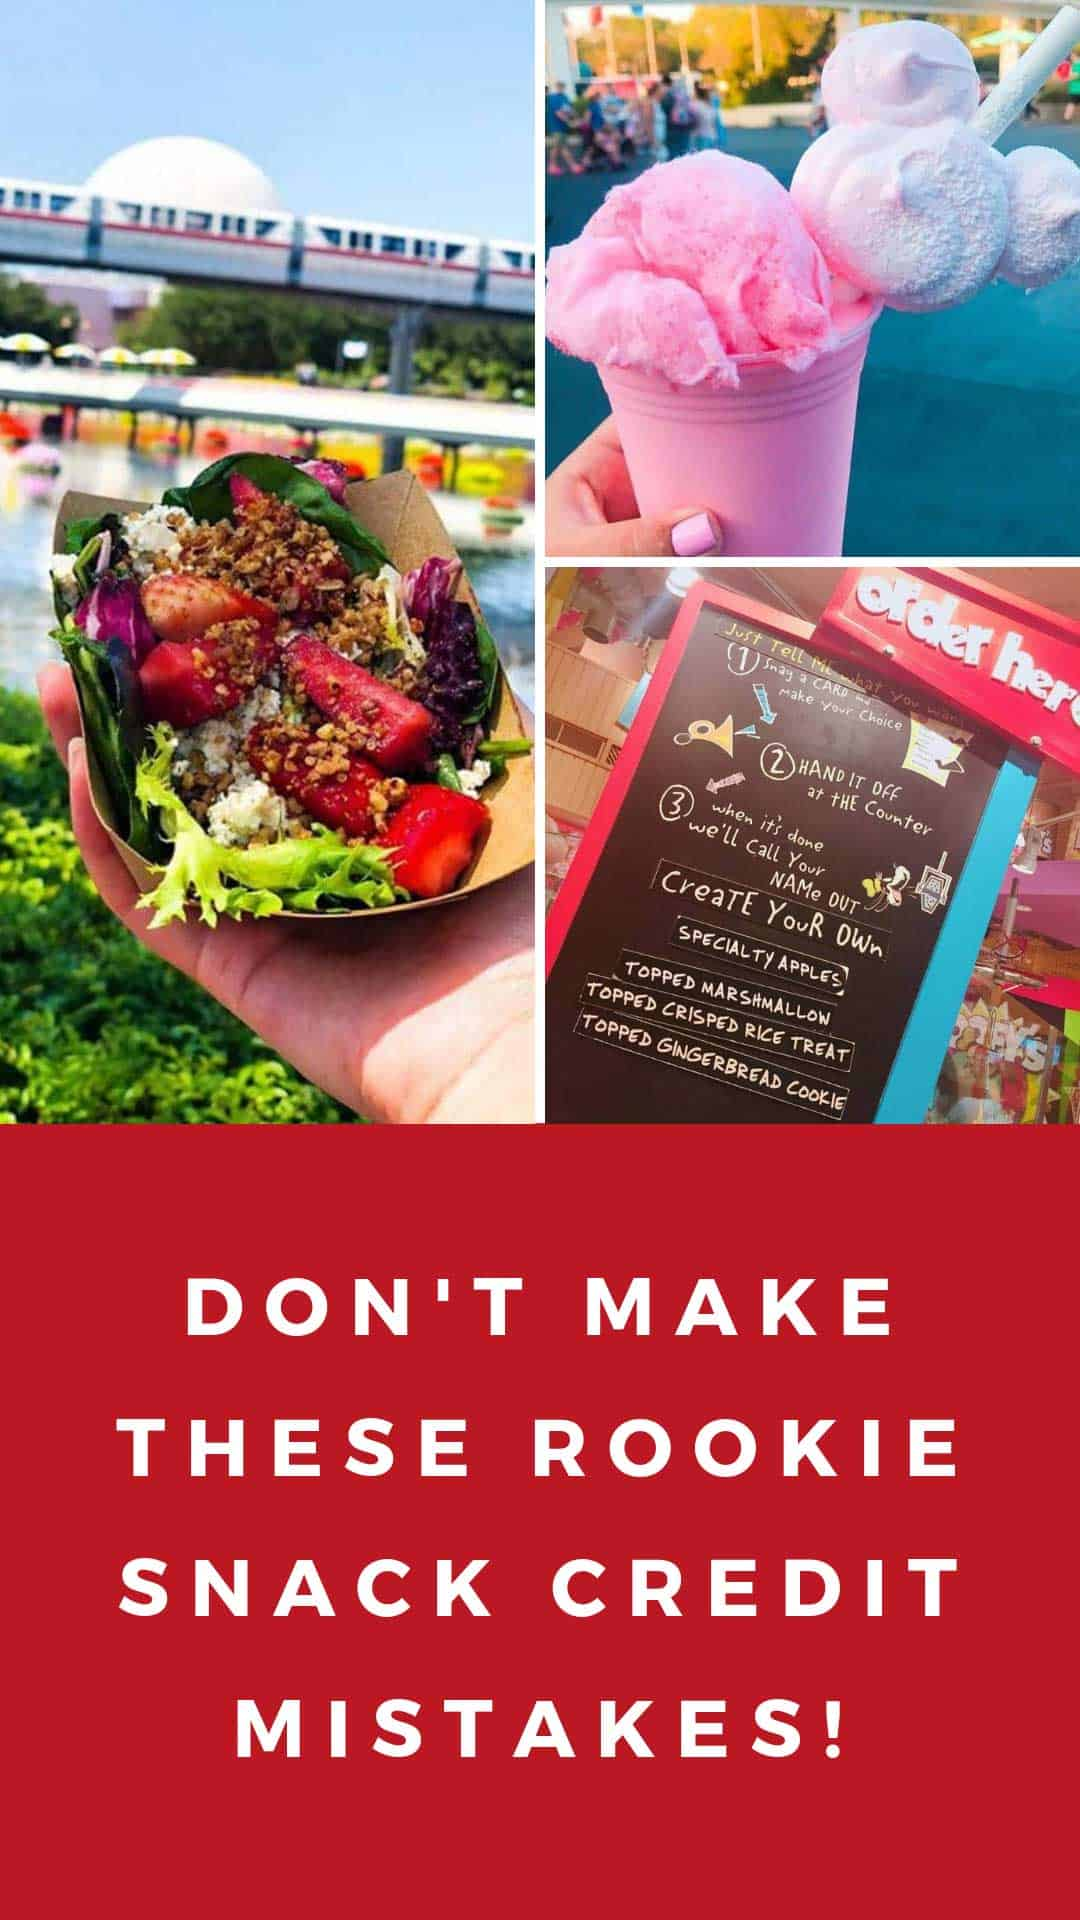 Use your dining plan snack credits wisely and you can really get the most value out of your meal plan. Check out our hacks to find out how to do it like a pro! No rookie mistakes for you!